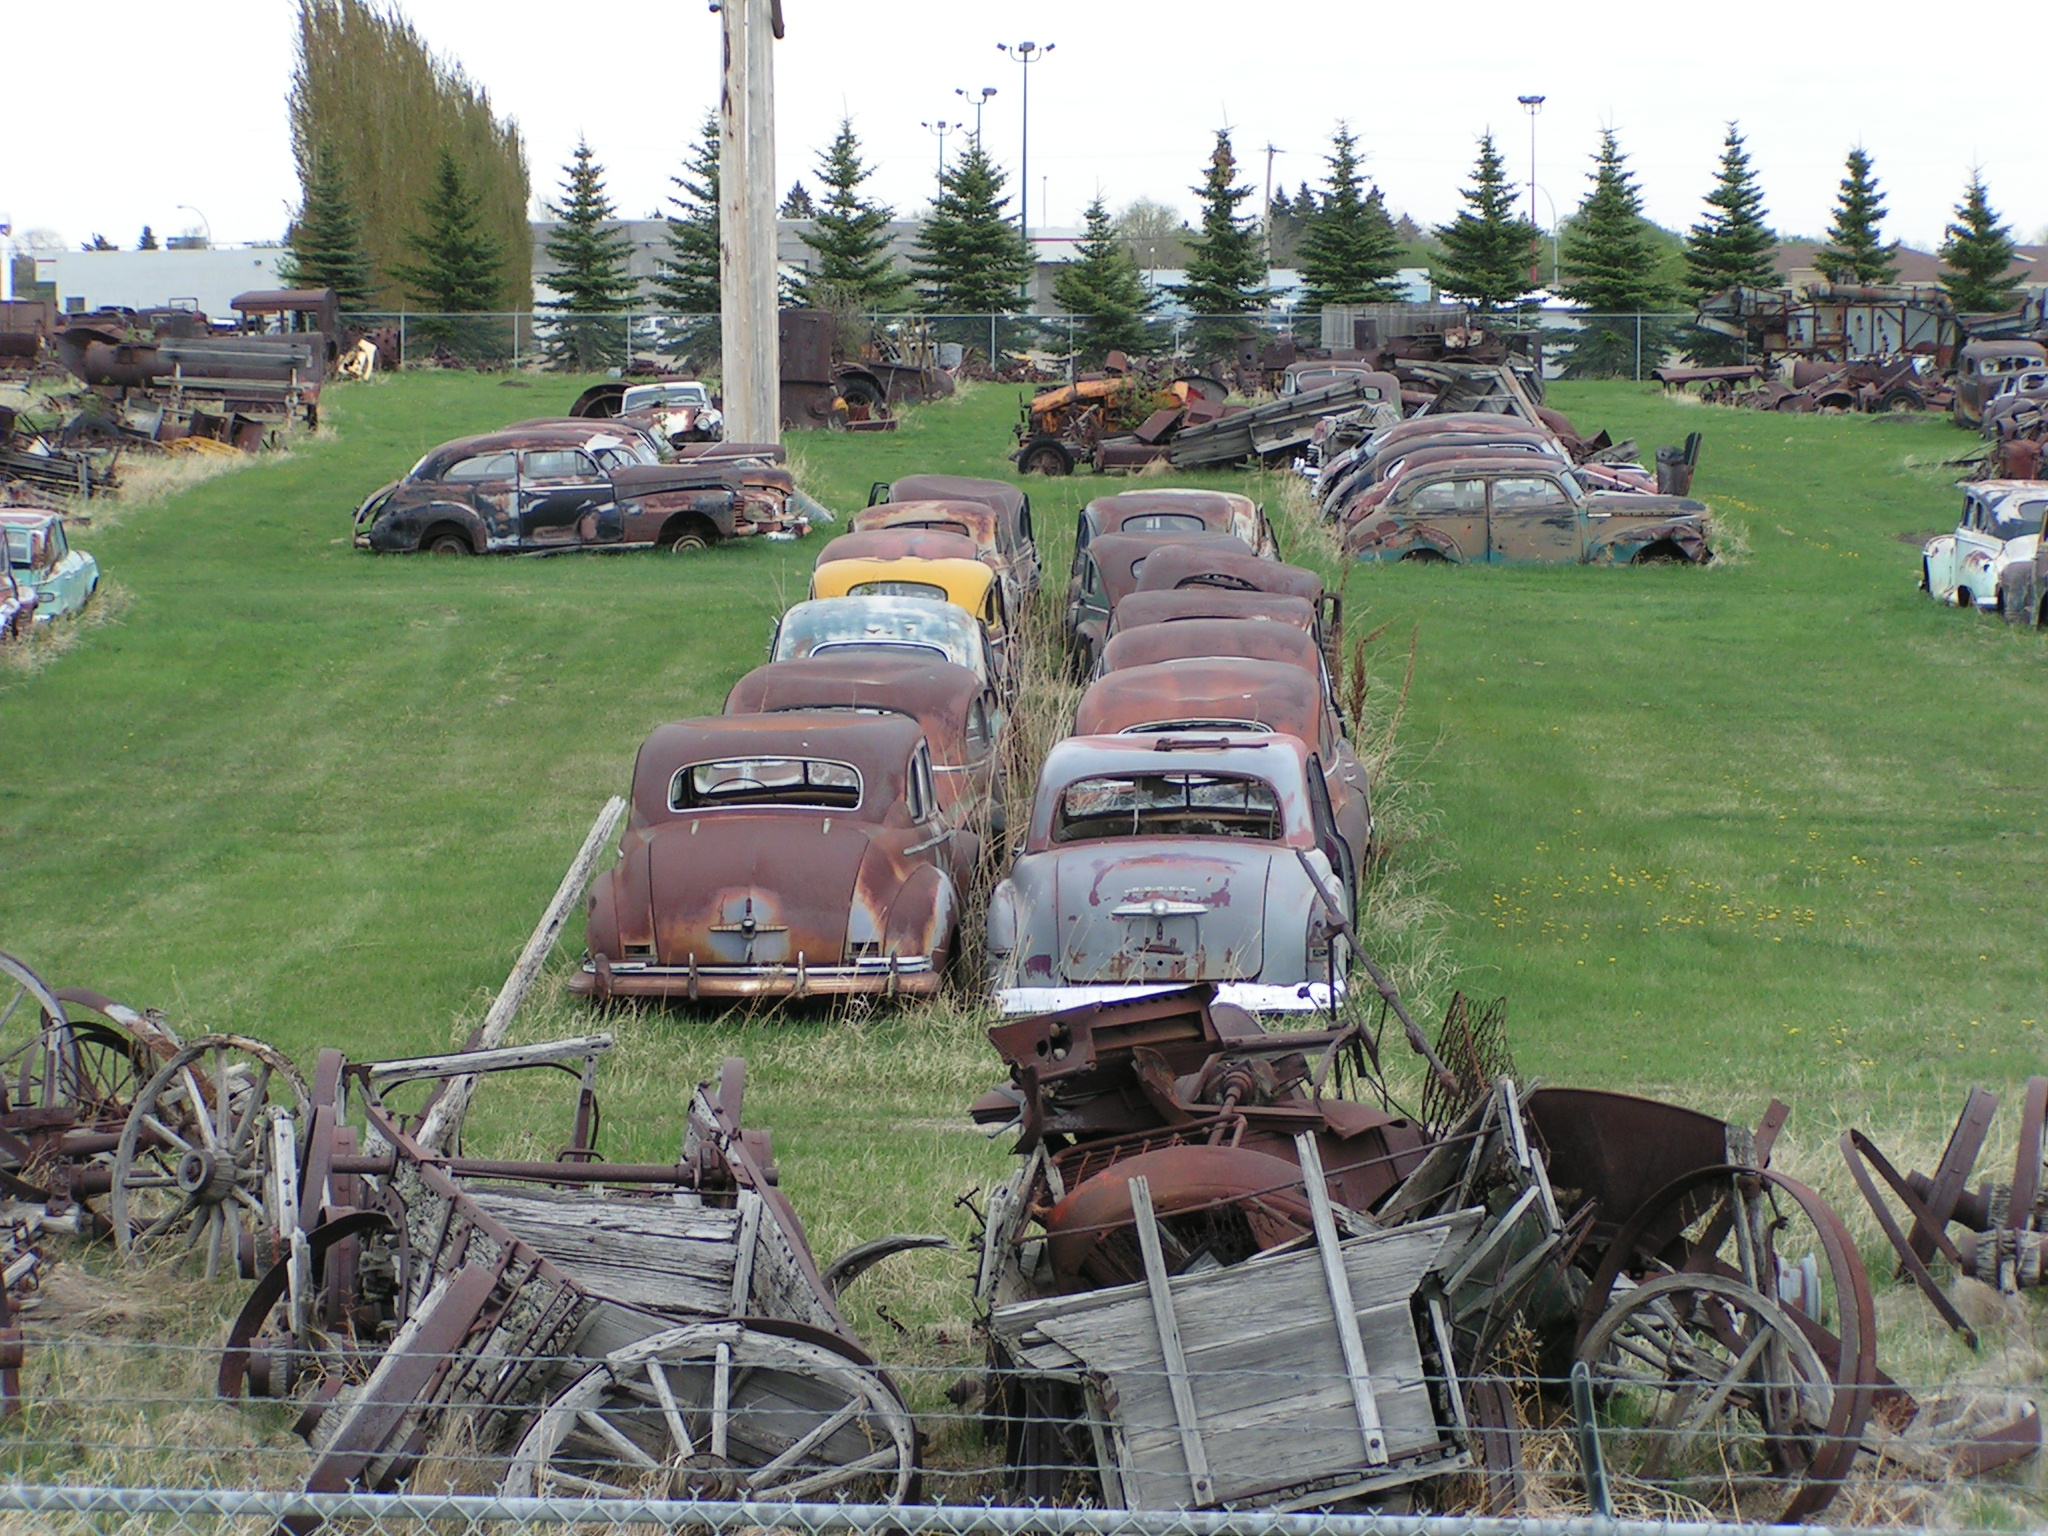 File:Old rusty cars and agricultural equipment (2553217947).jpg ...